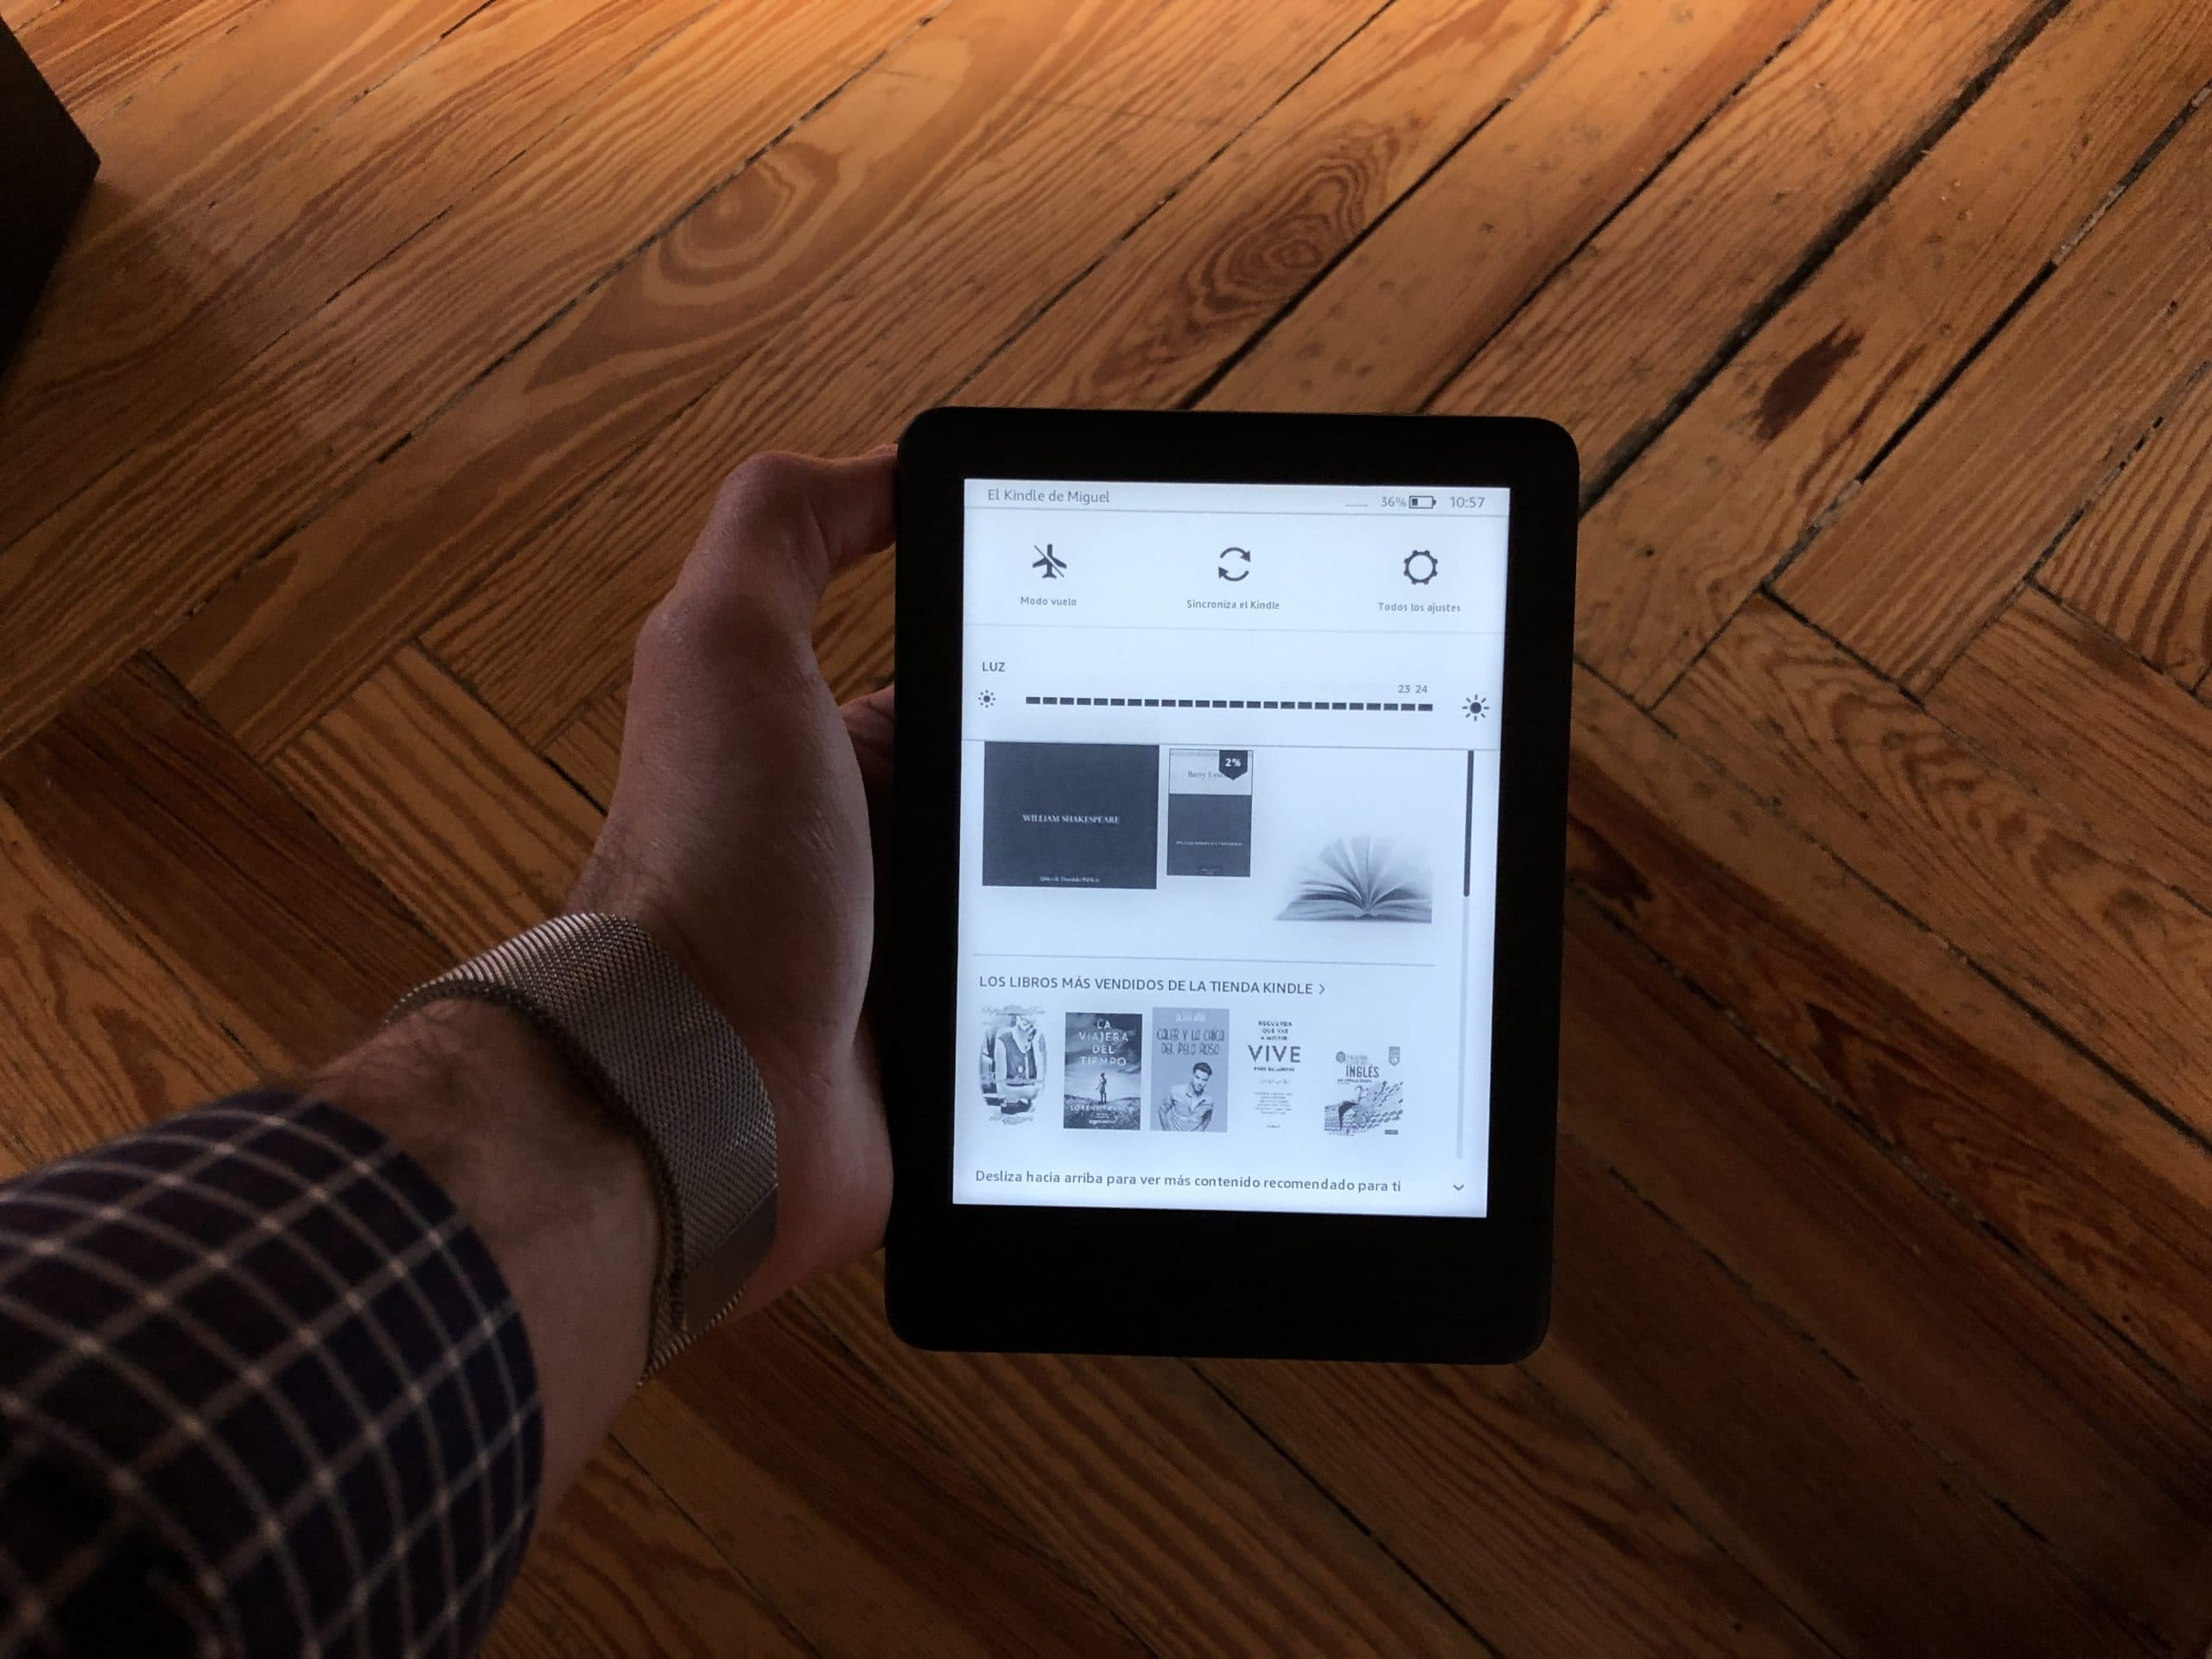 Descargar Gratis Libros Kindle Análisis Del Kindle 2019 Con Luz Frontal Integrada